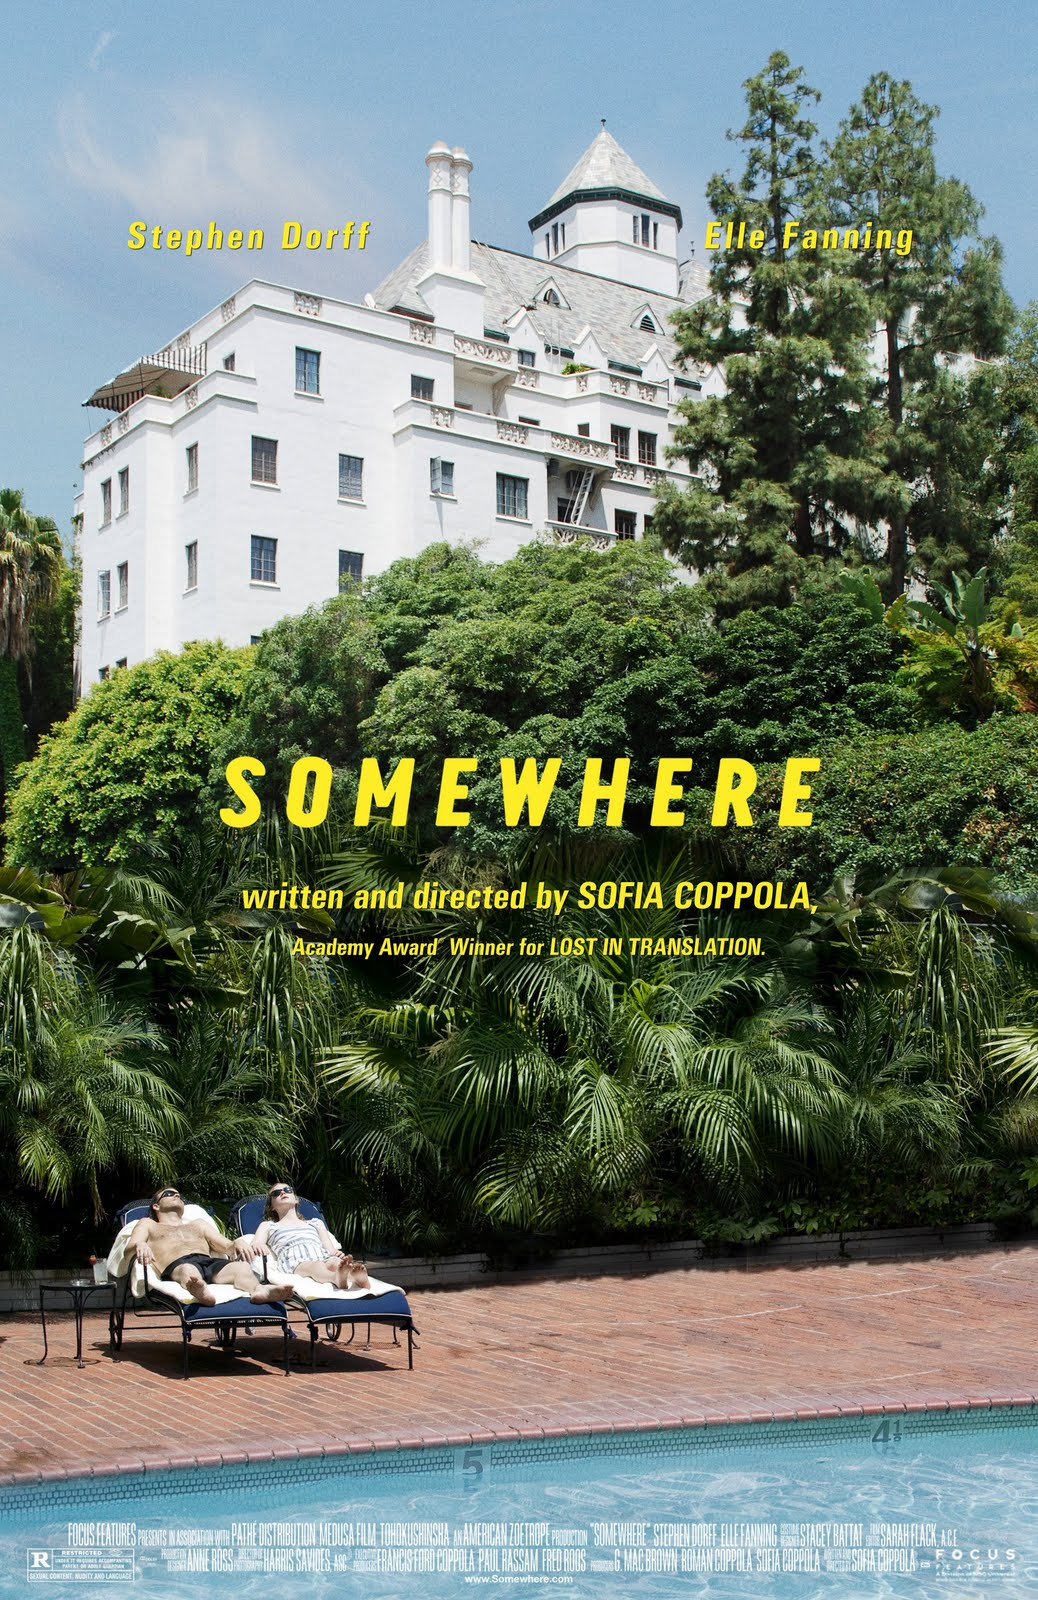 http://4.bp.blogspot.com/_z_9ADFDroHw/TR8Aq9SzGZI/AAAAAAAAFTo/-FH0Rk6b8us/s1600/o-poster-and-trailer-for-sofia-coppola-s-somewhere.jpg